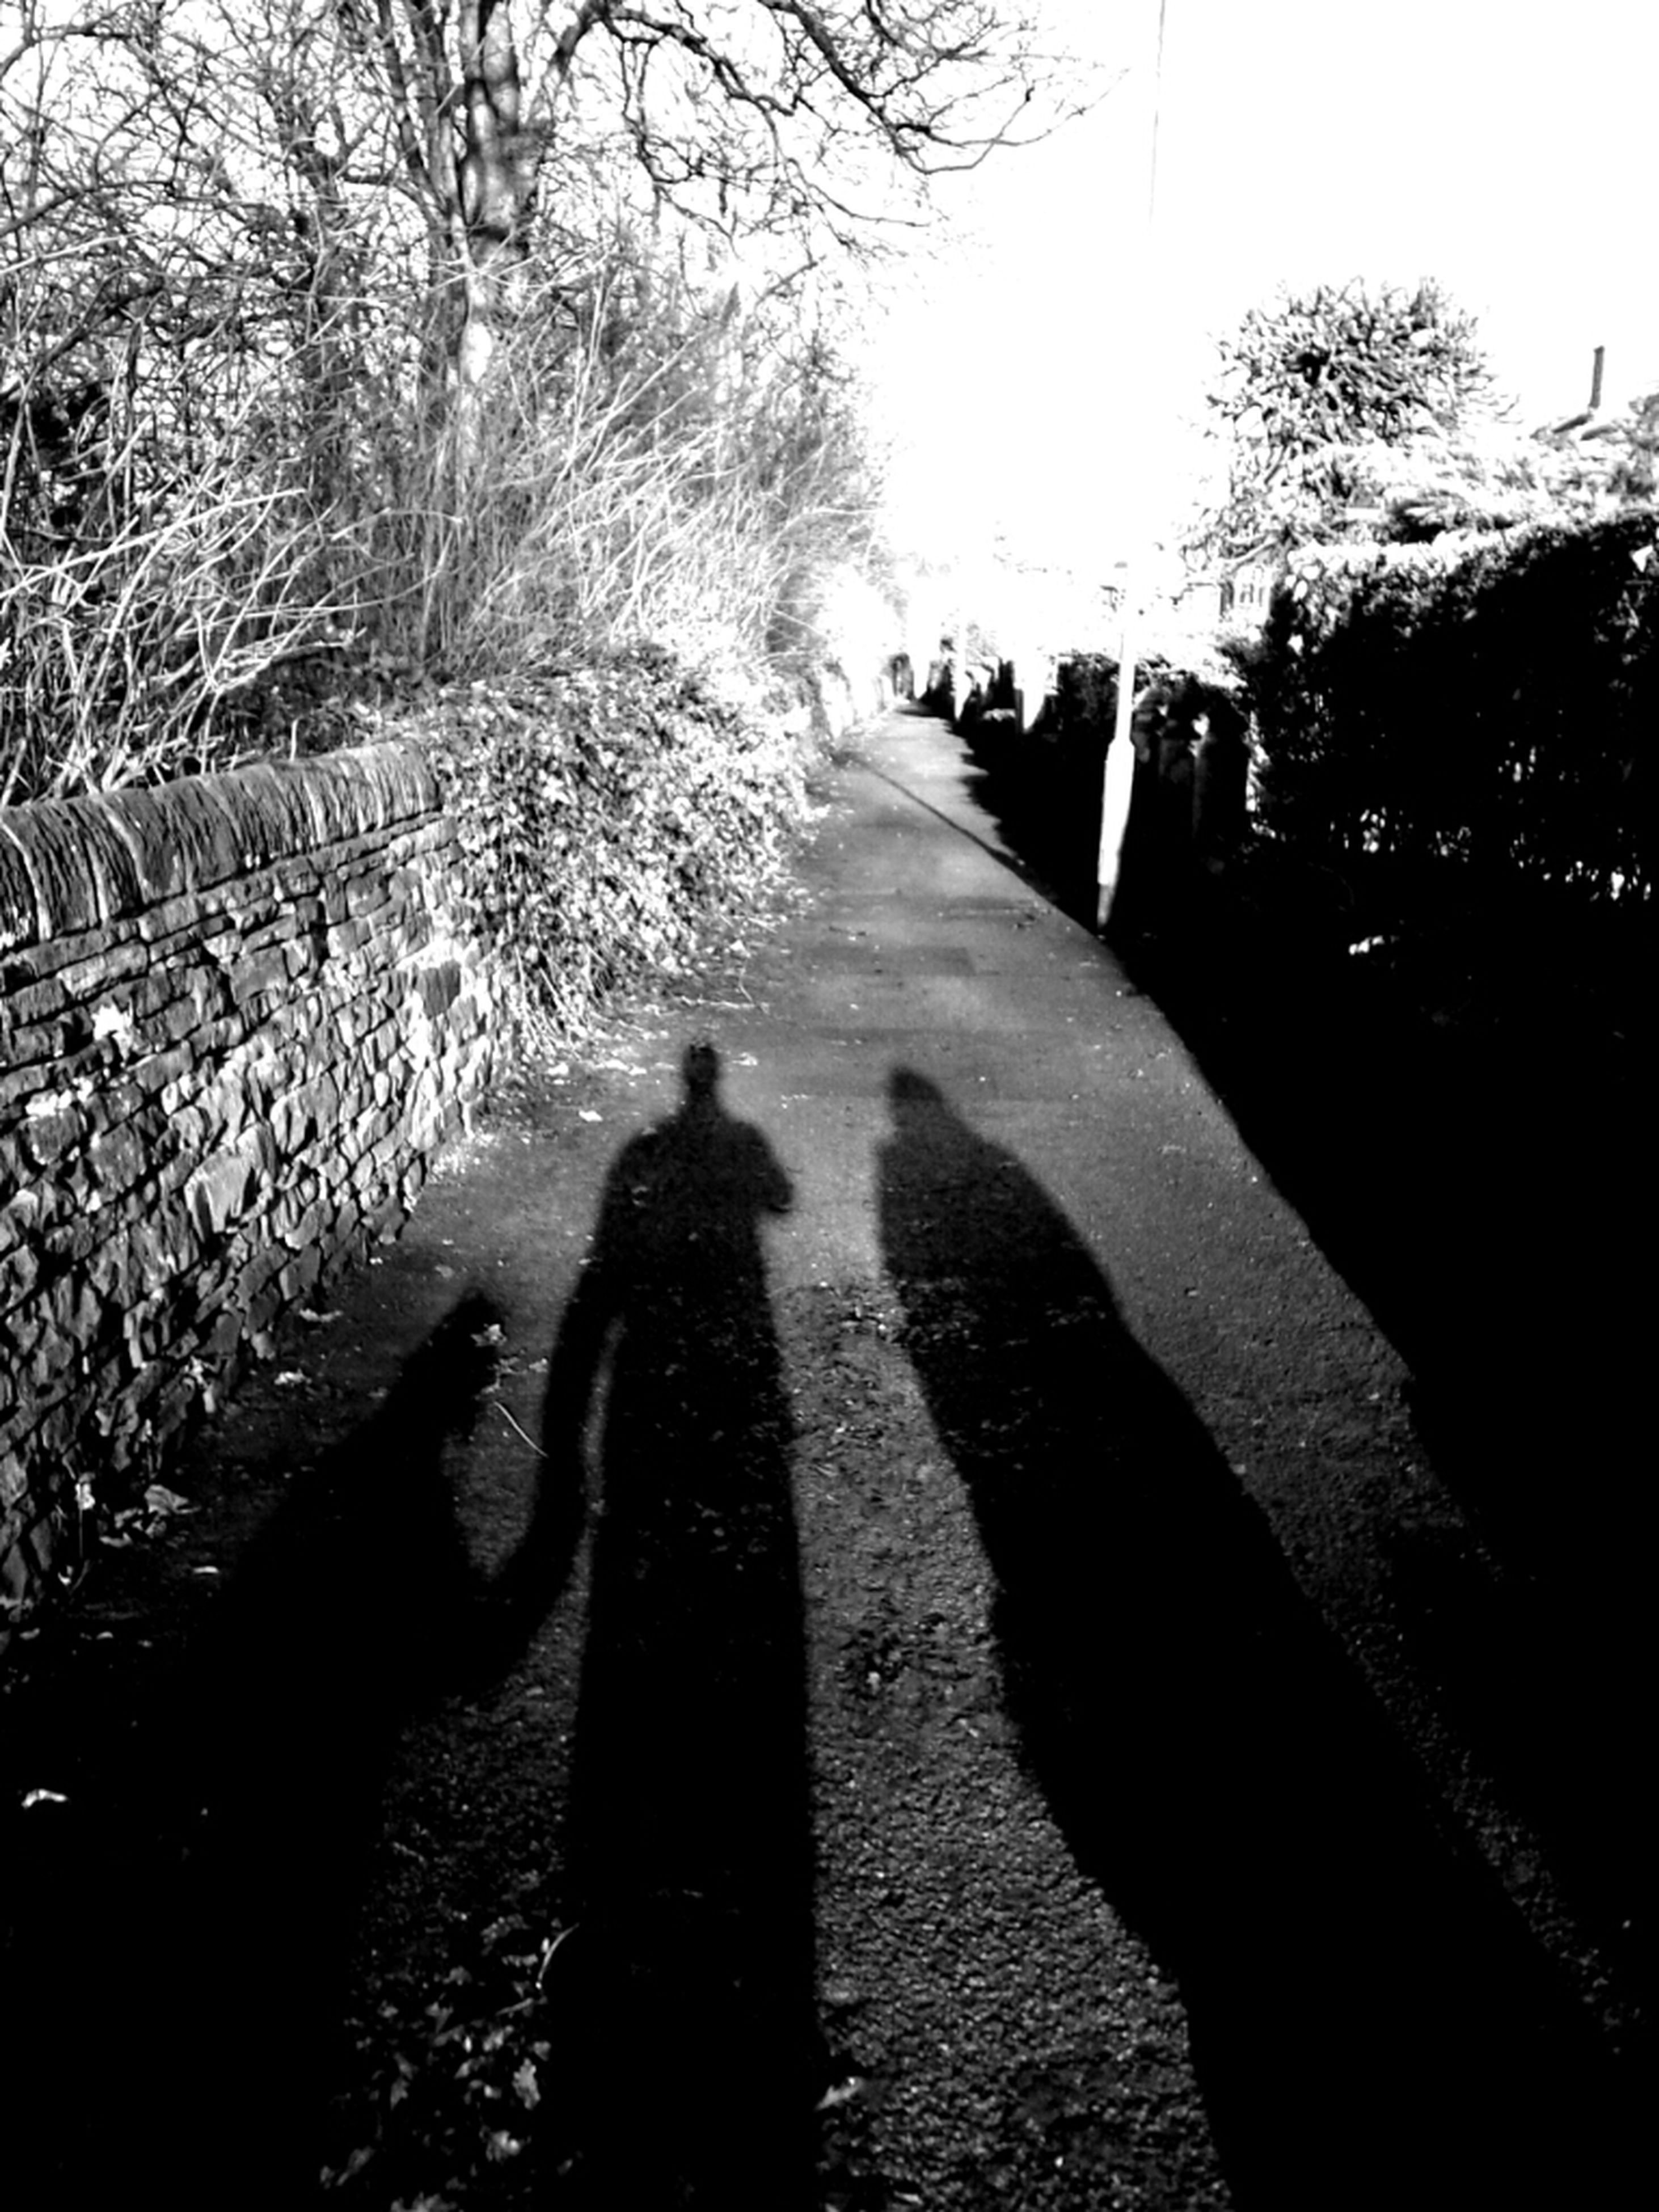 lifestyles, tree, shadow, leisure activity, men, sunlight, togetherness, rear view, walking, the way forward, person, silhouette, bonding, outdoors, street, nature, unrecognizable person